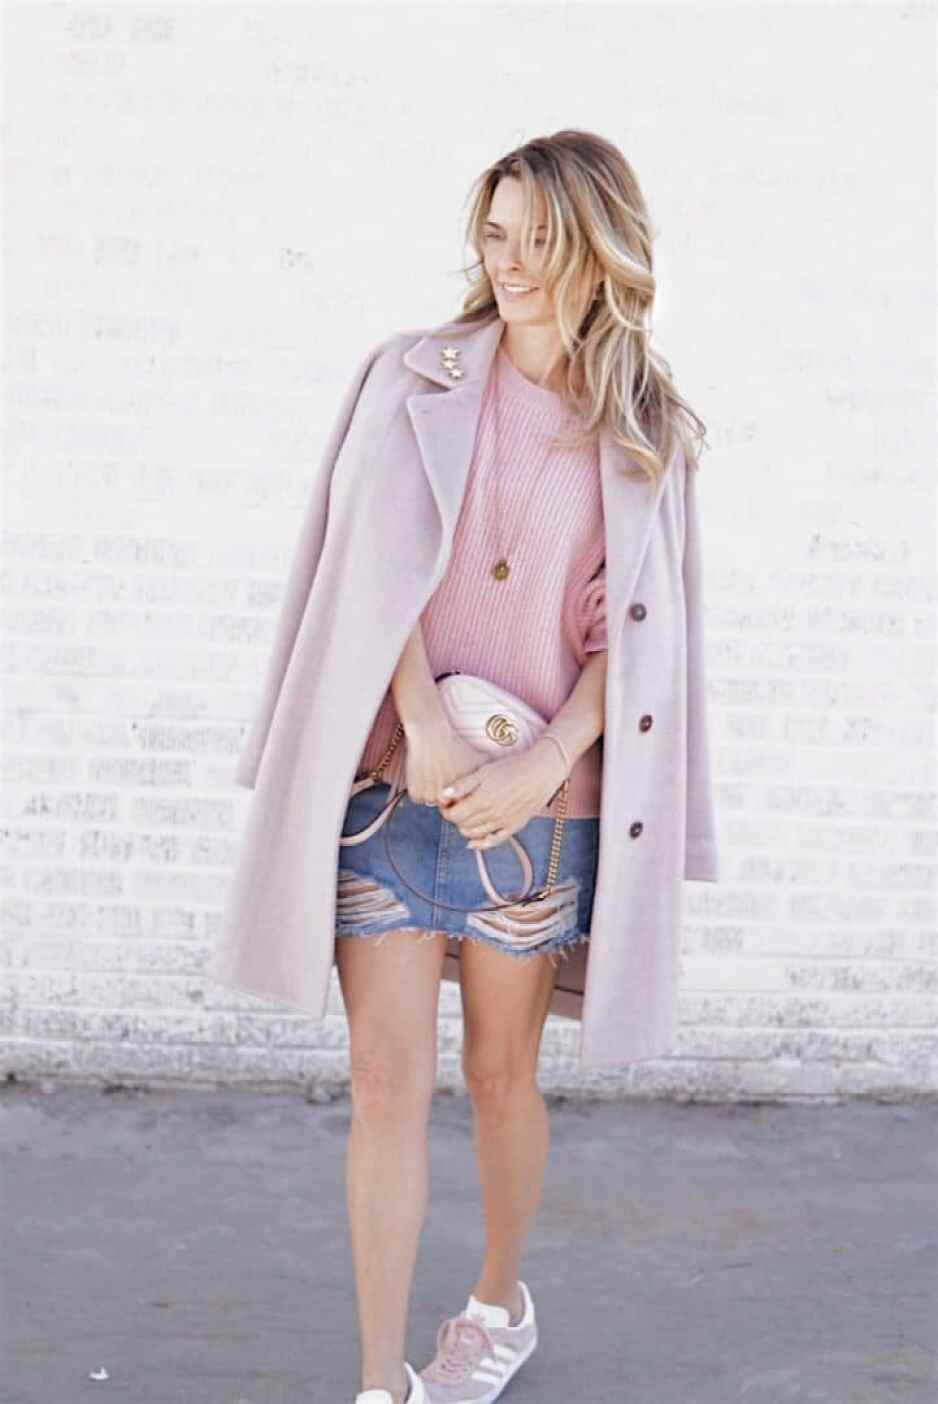 Pink Coat, Pink Sweater, Denim Skirt, Gucci Bag and Pink Adidas Sneakers - Valentine's Day Style | Her Styled View